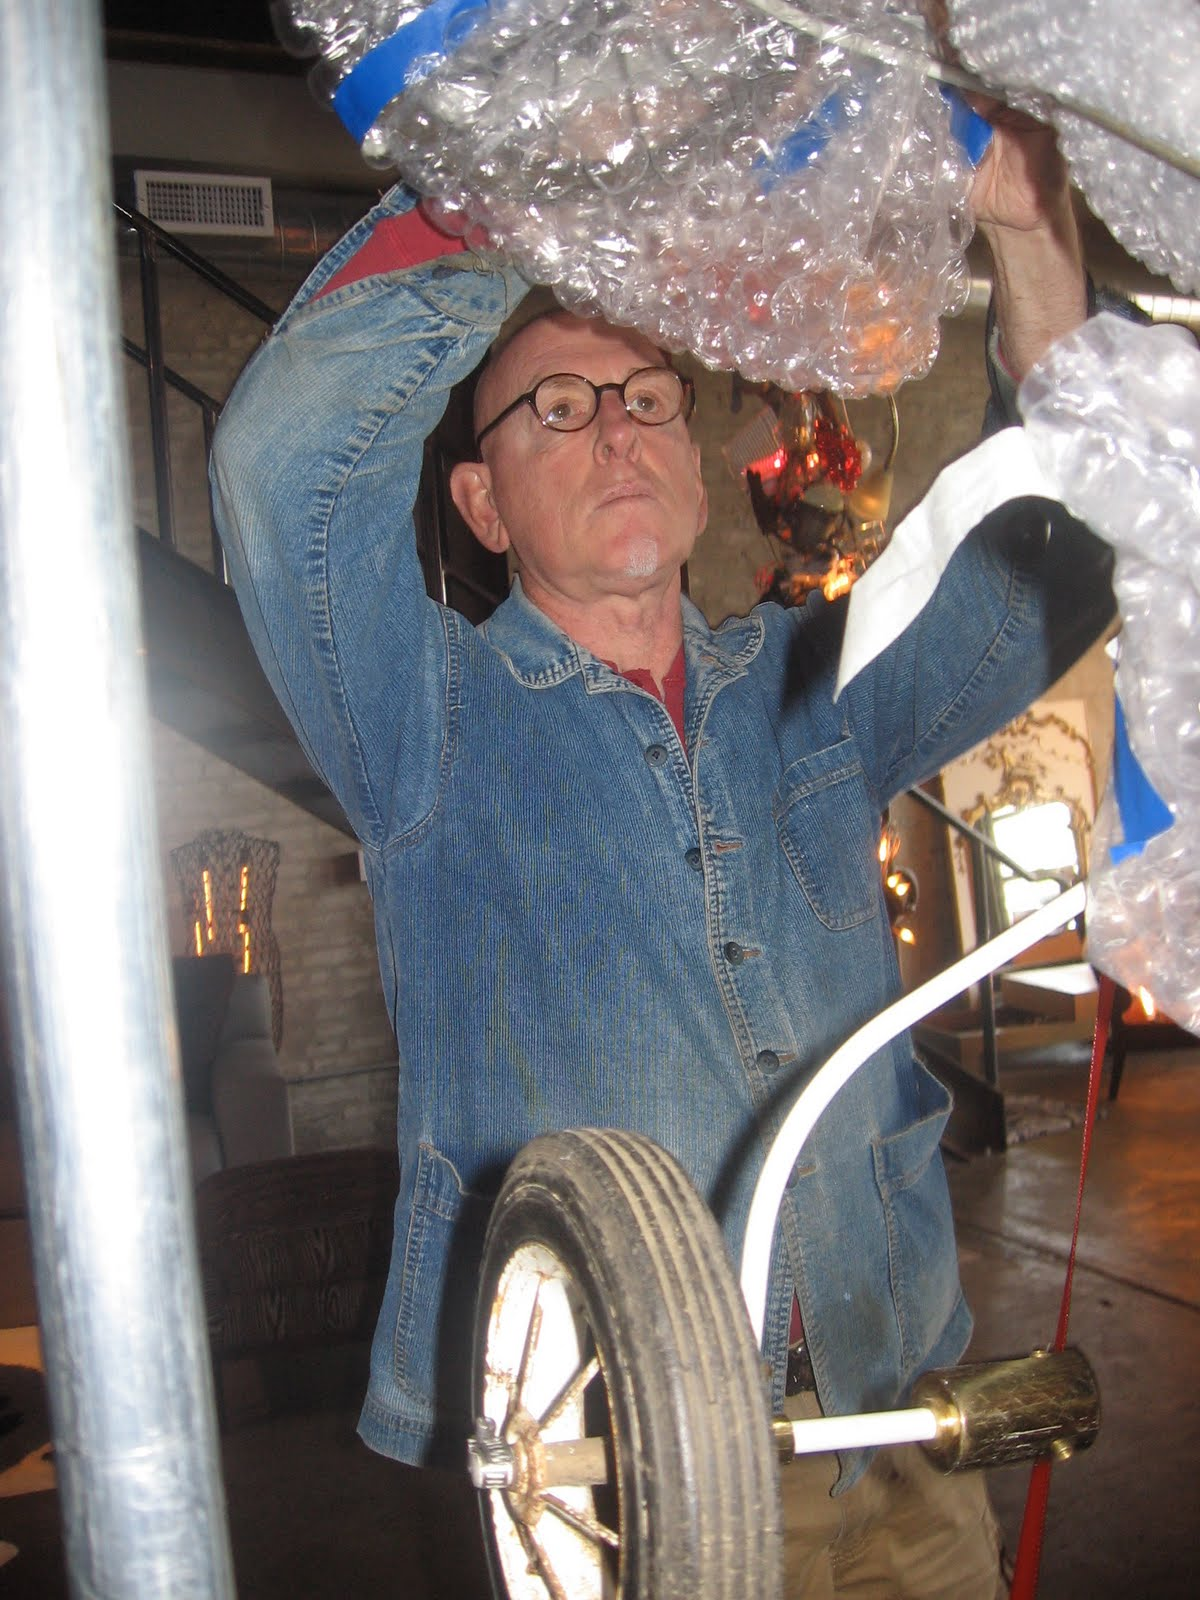 FROM THE FIELD: THOM NICKELS: ALCHEMIST OF LIGHT from ICON Magazine ...